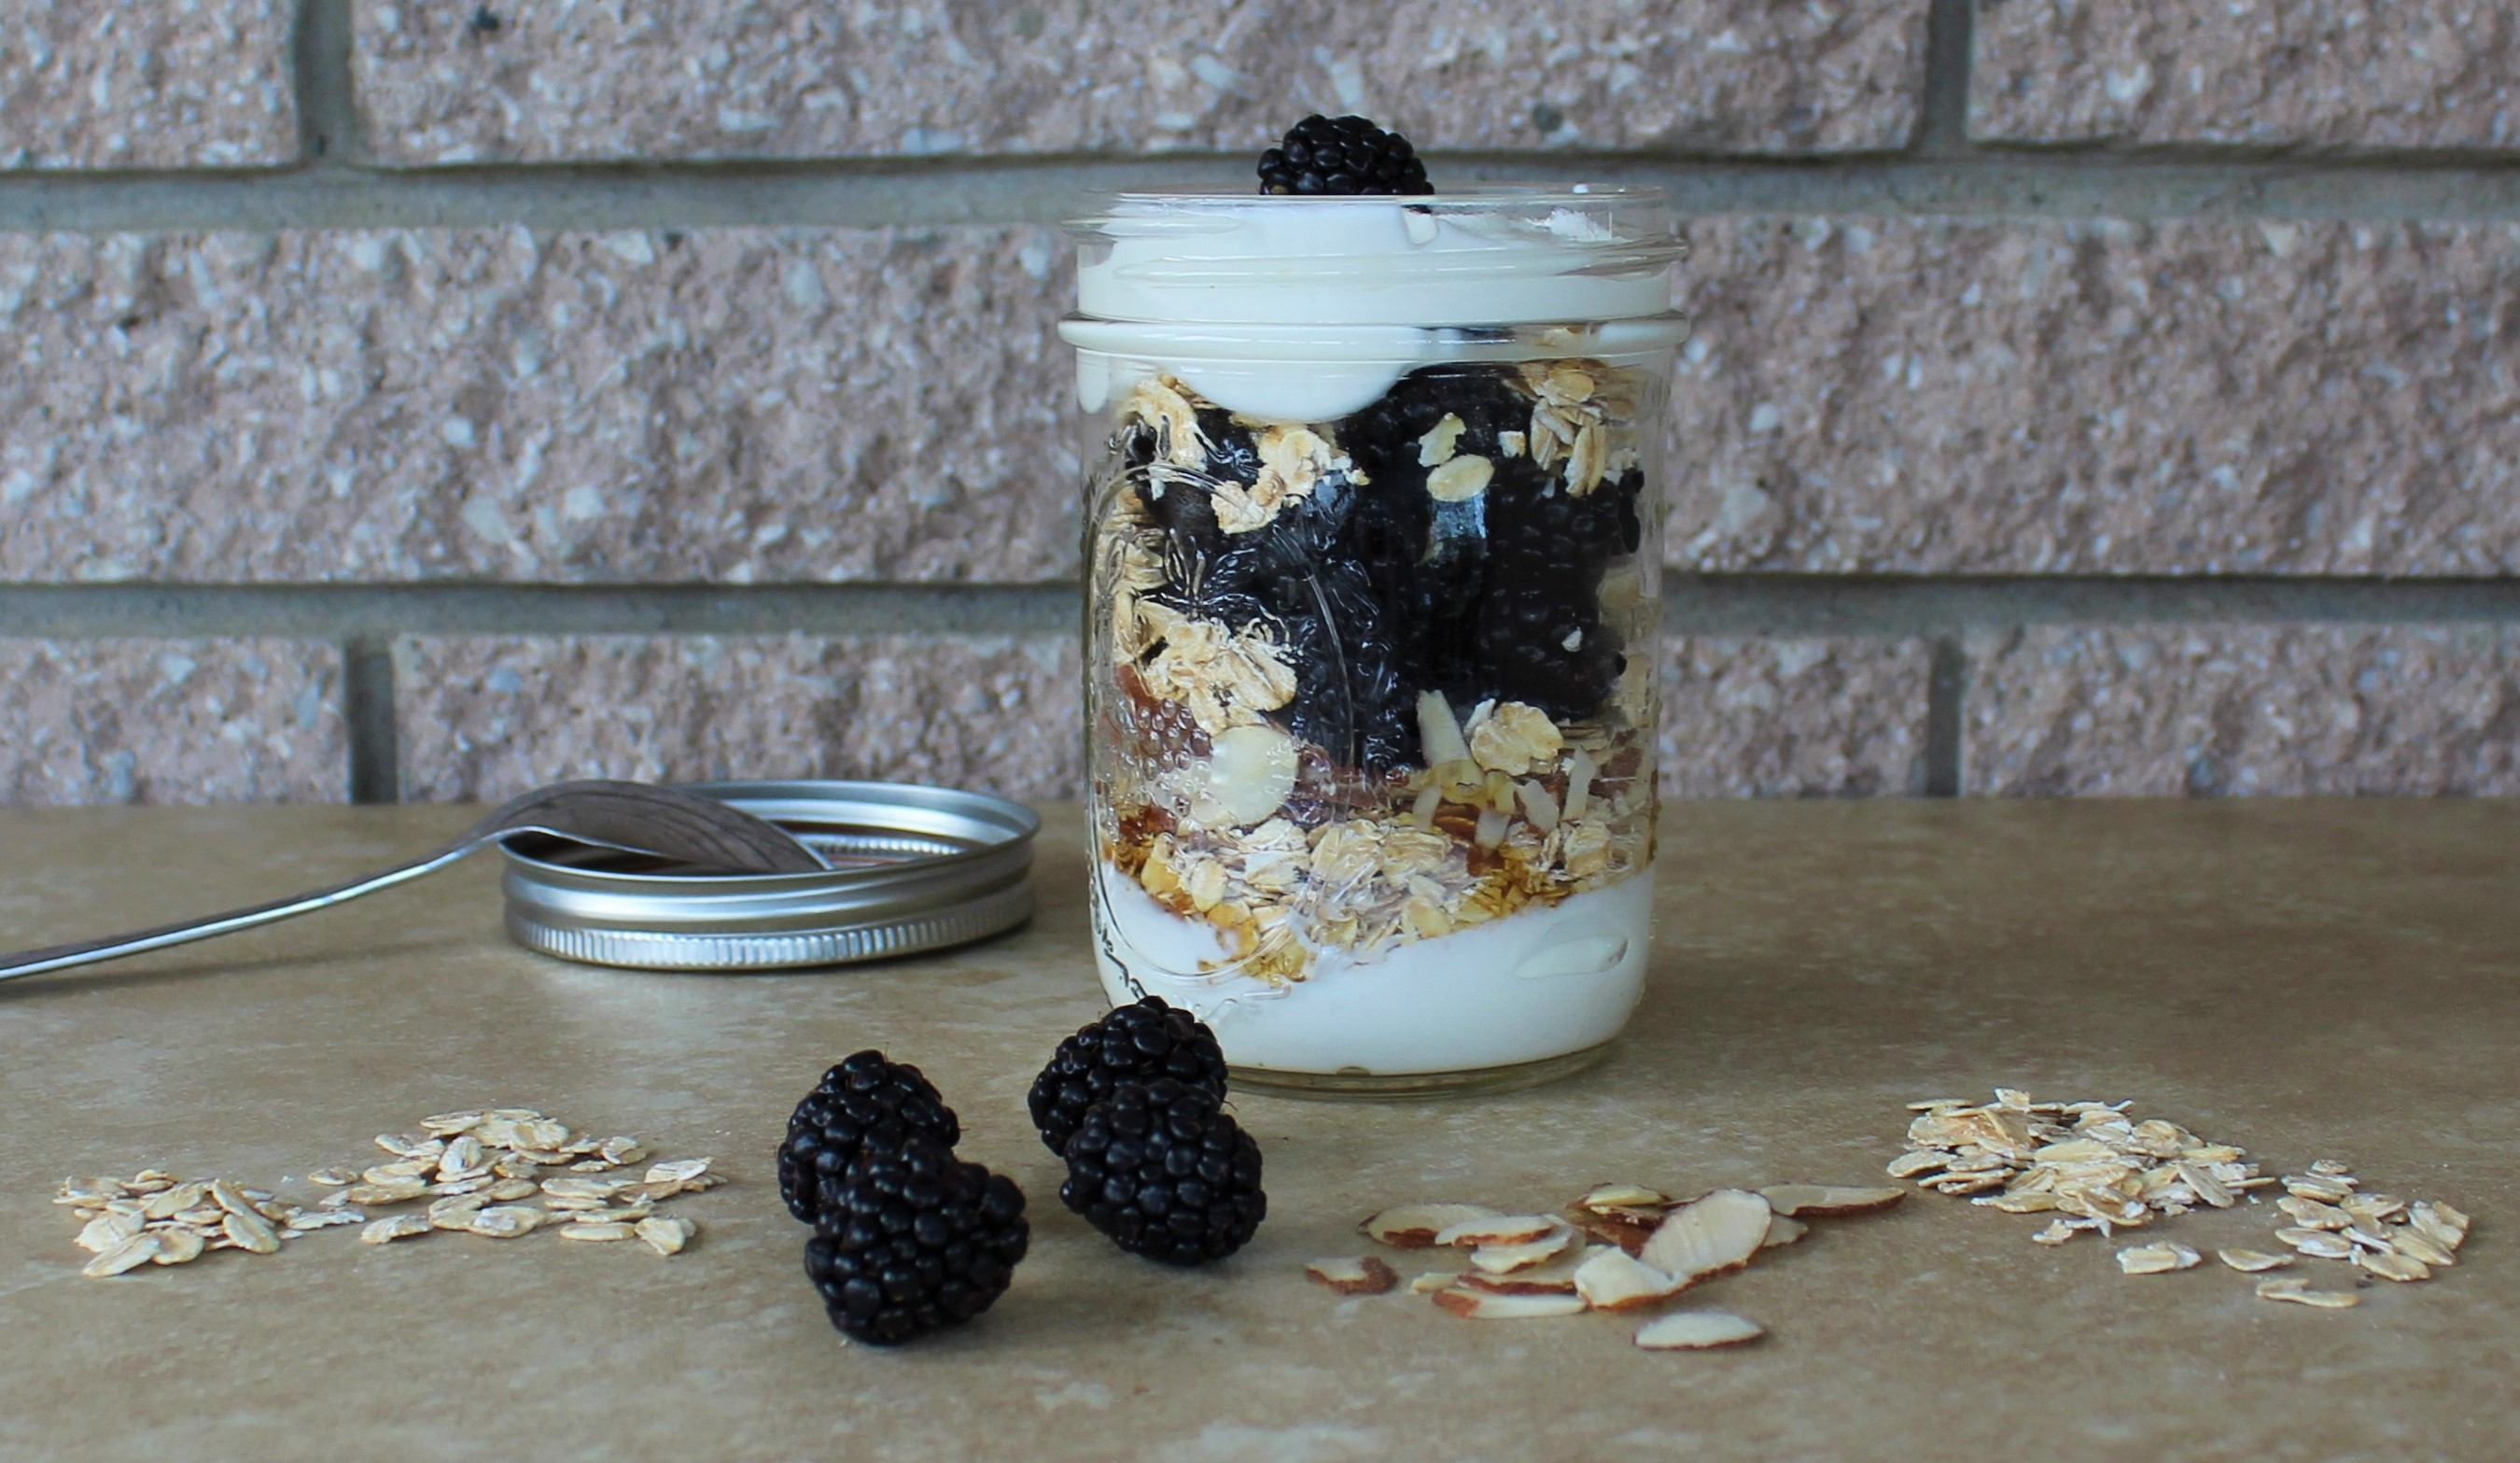 Greek Yogurt Breakfast Parfait with Blackberries, Honey and Almonds 1